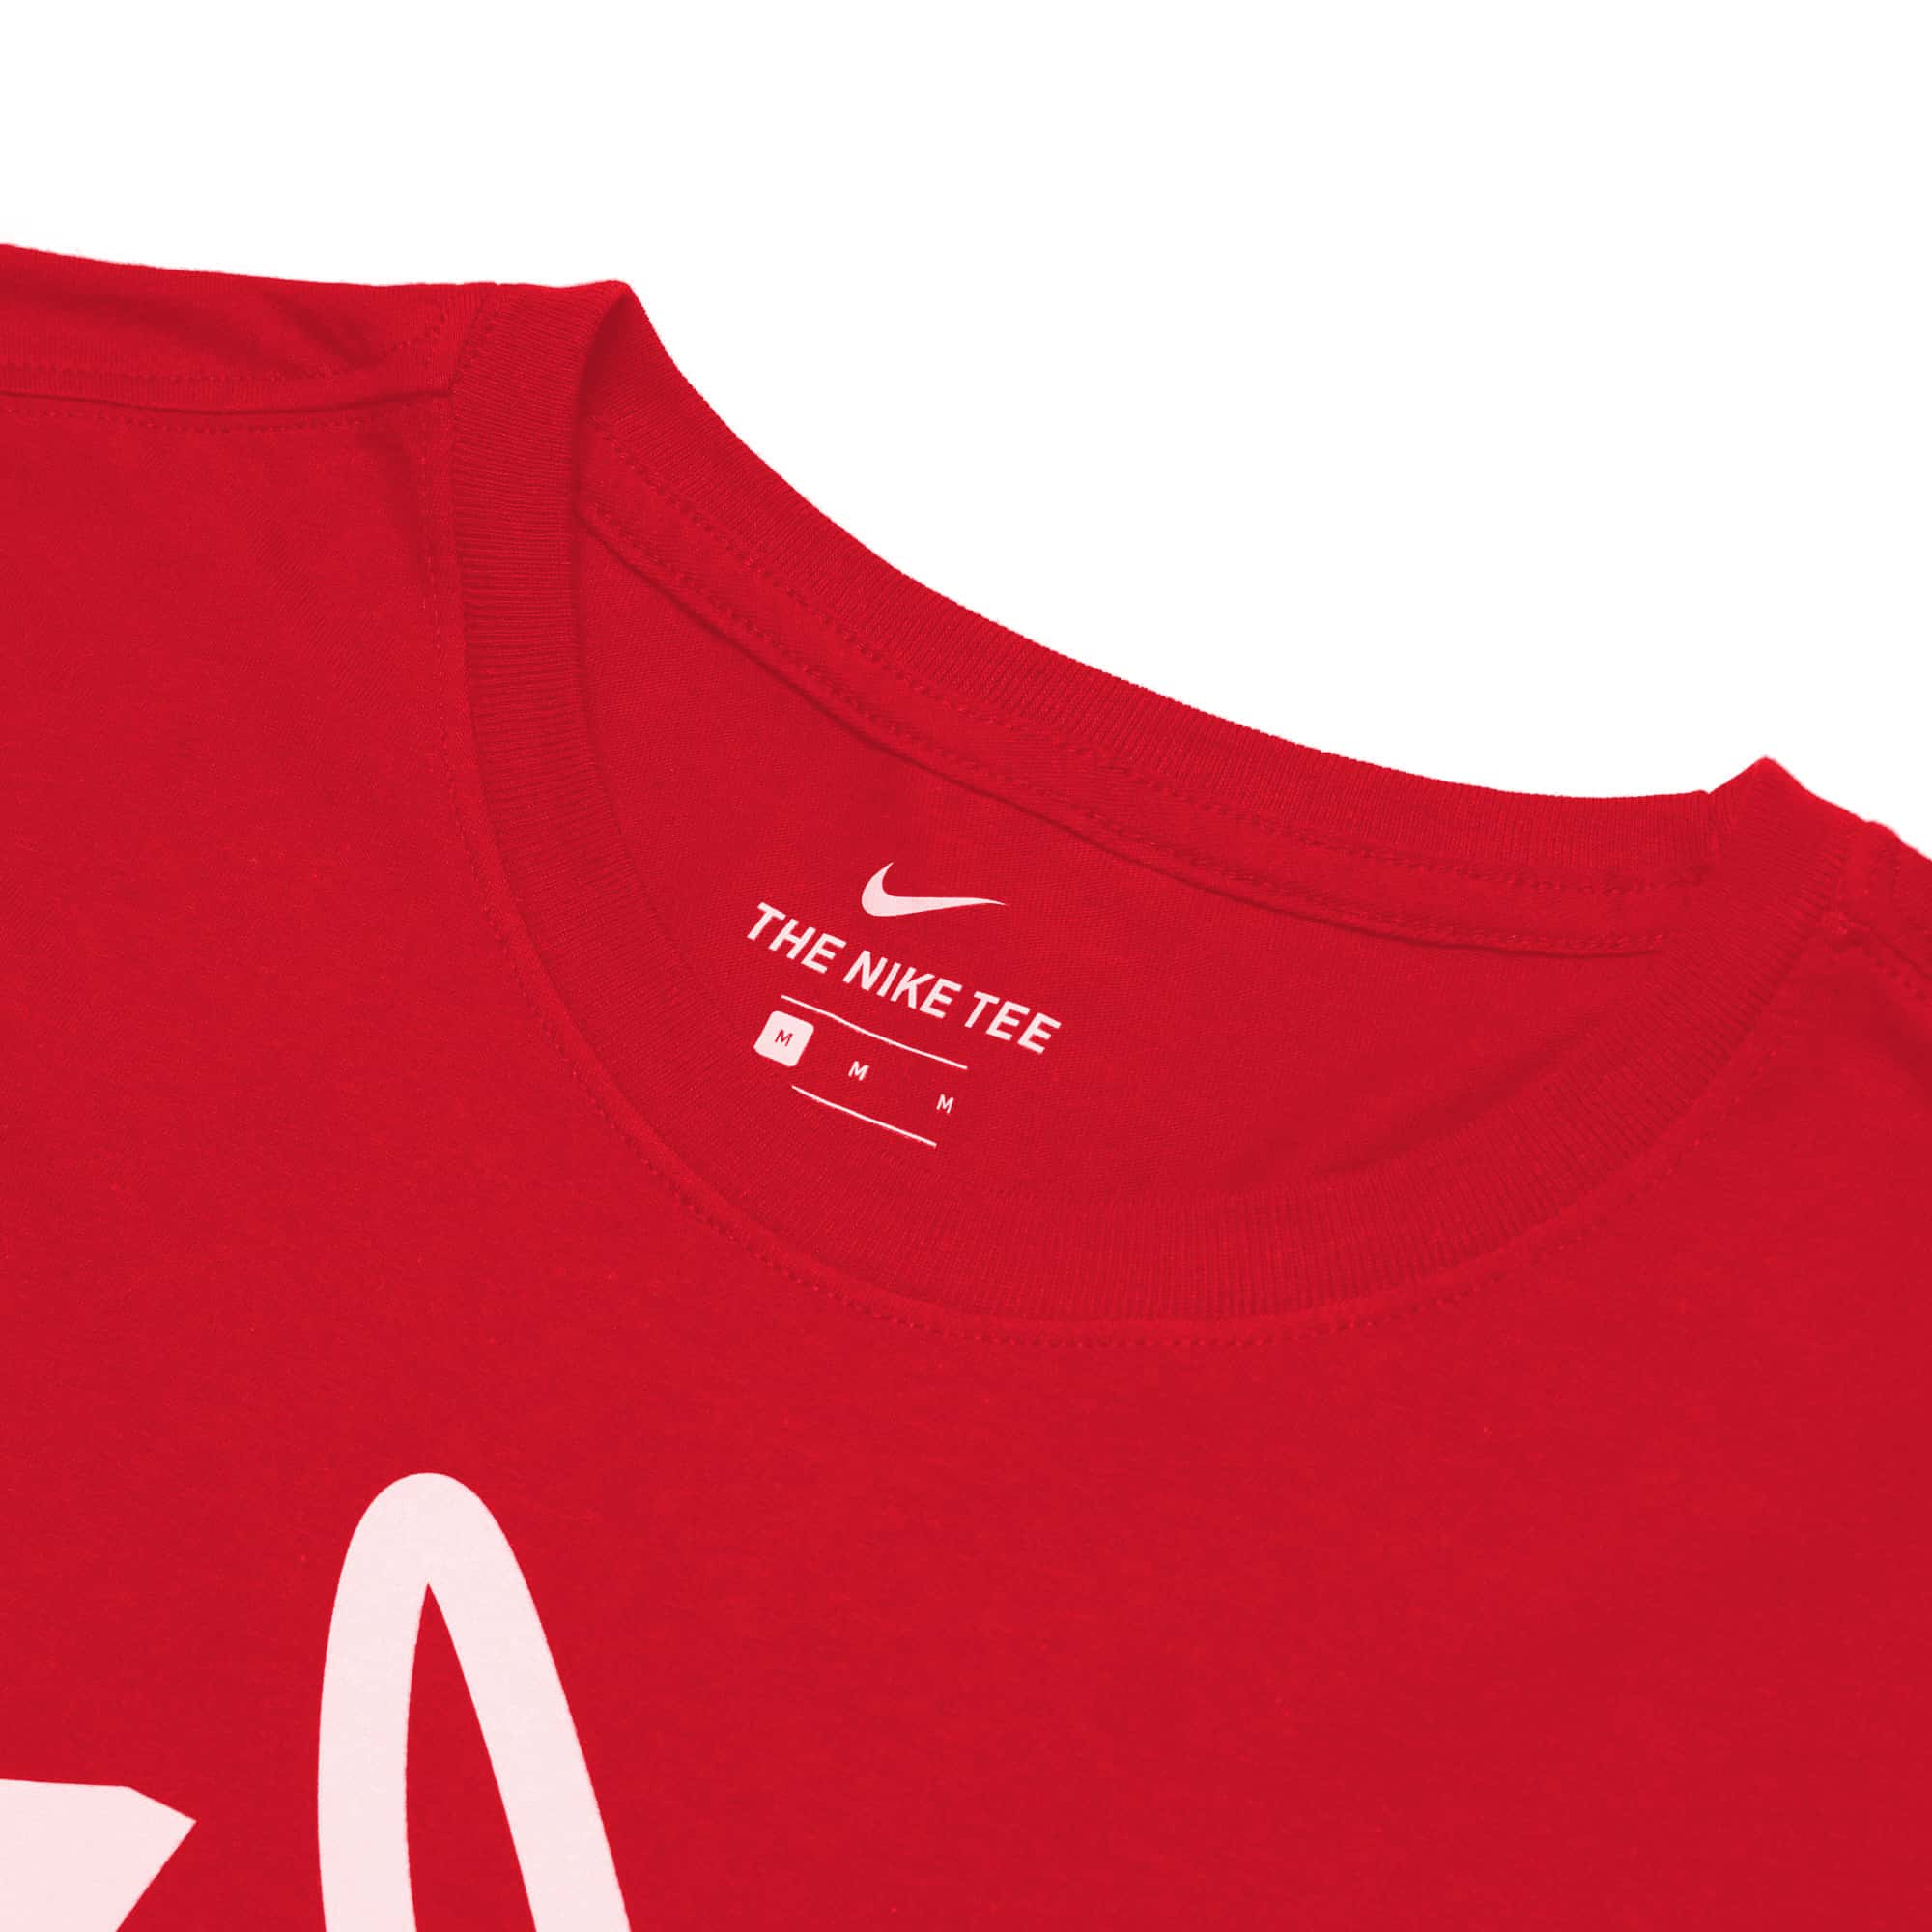 Reach x Nike Core Tee - Gym Red